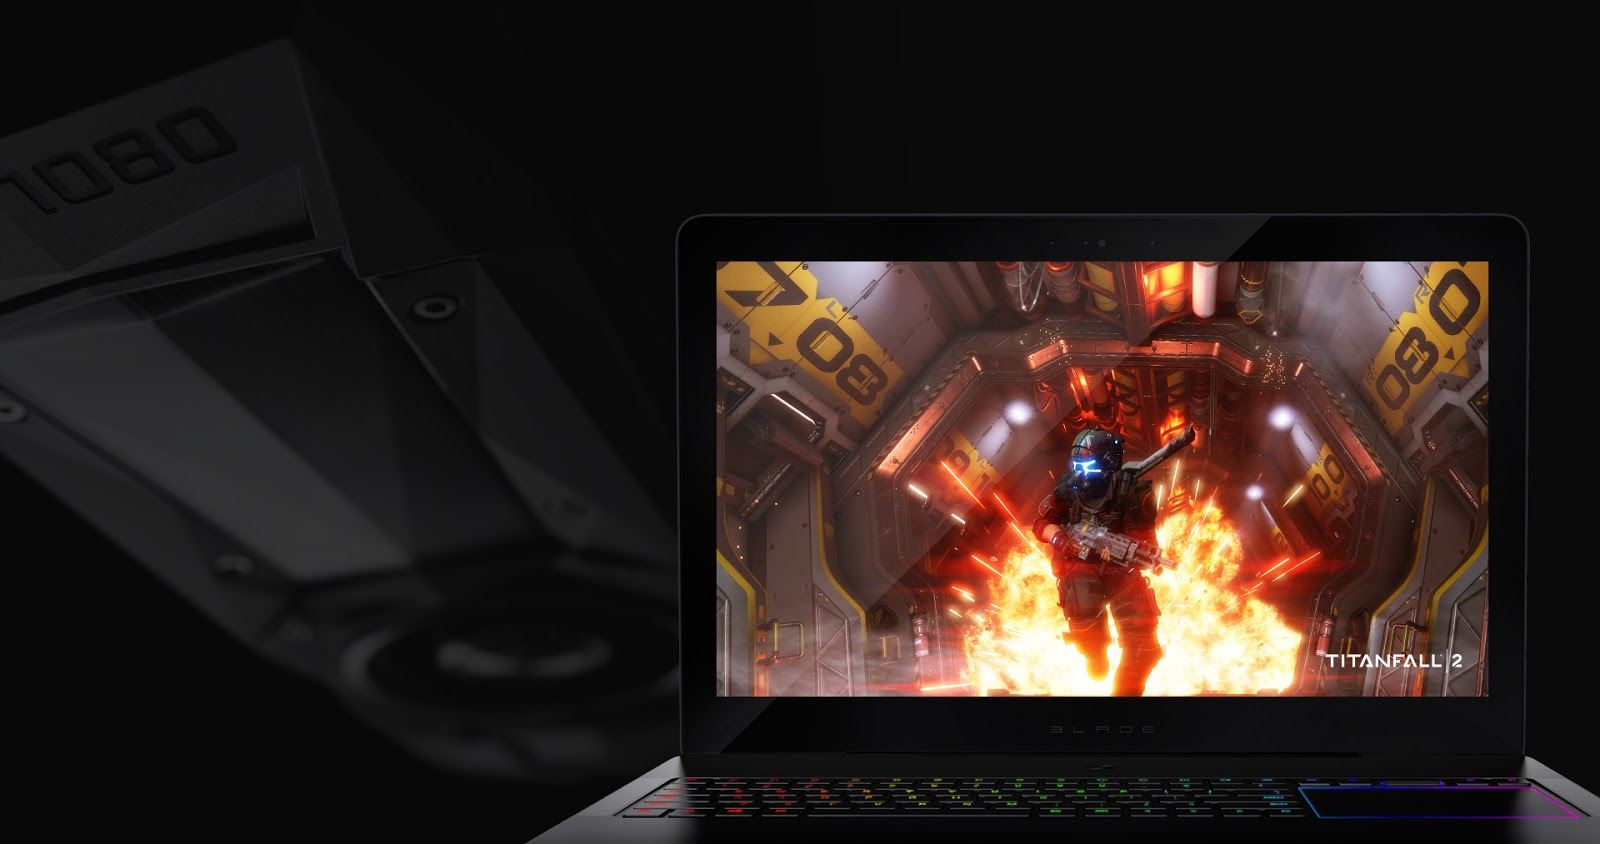 Razer Releases Another 14 Inch Blade Laptop With Intel